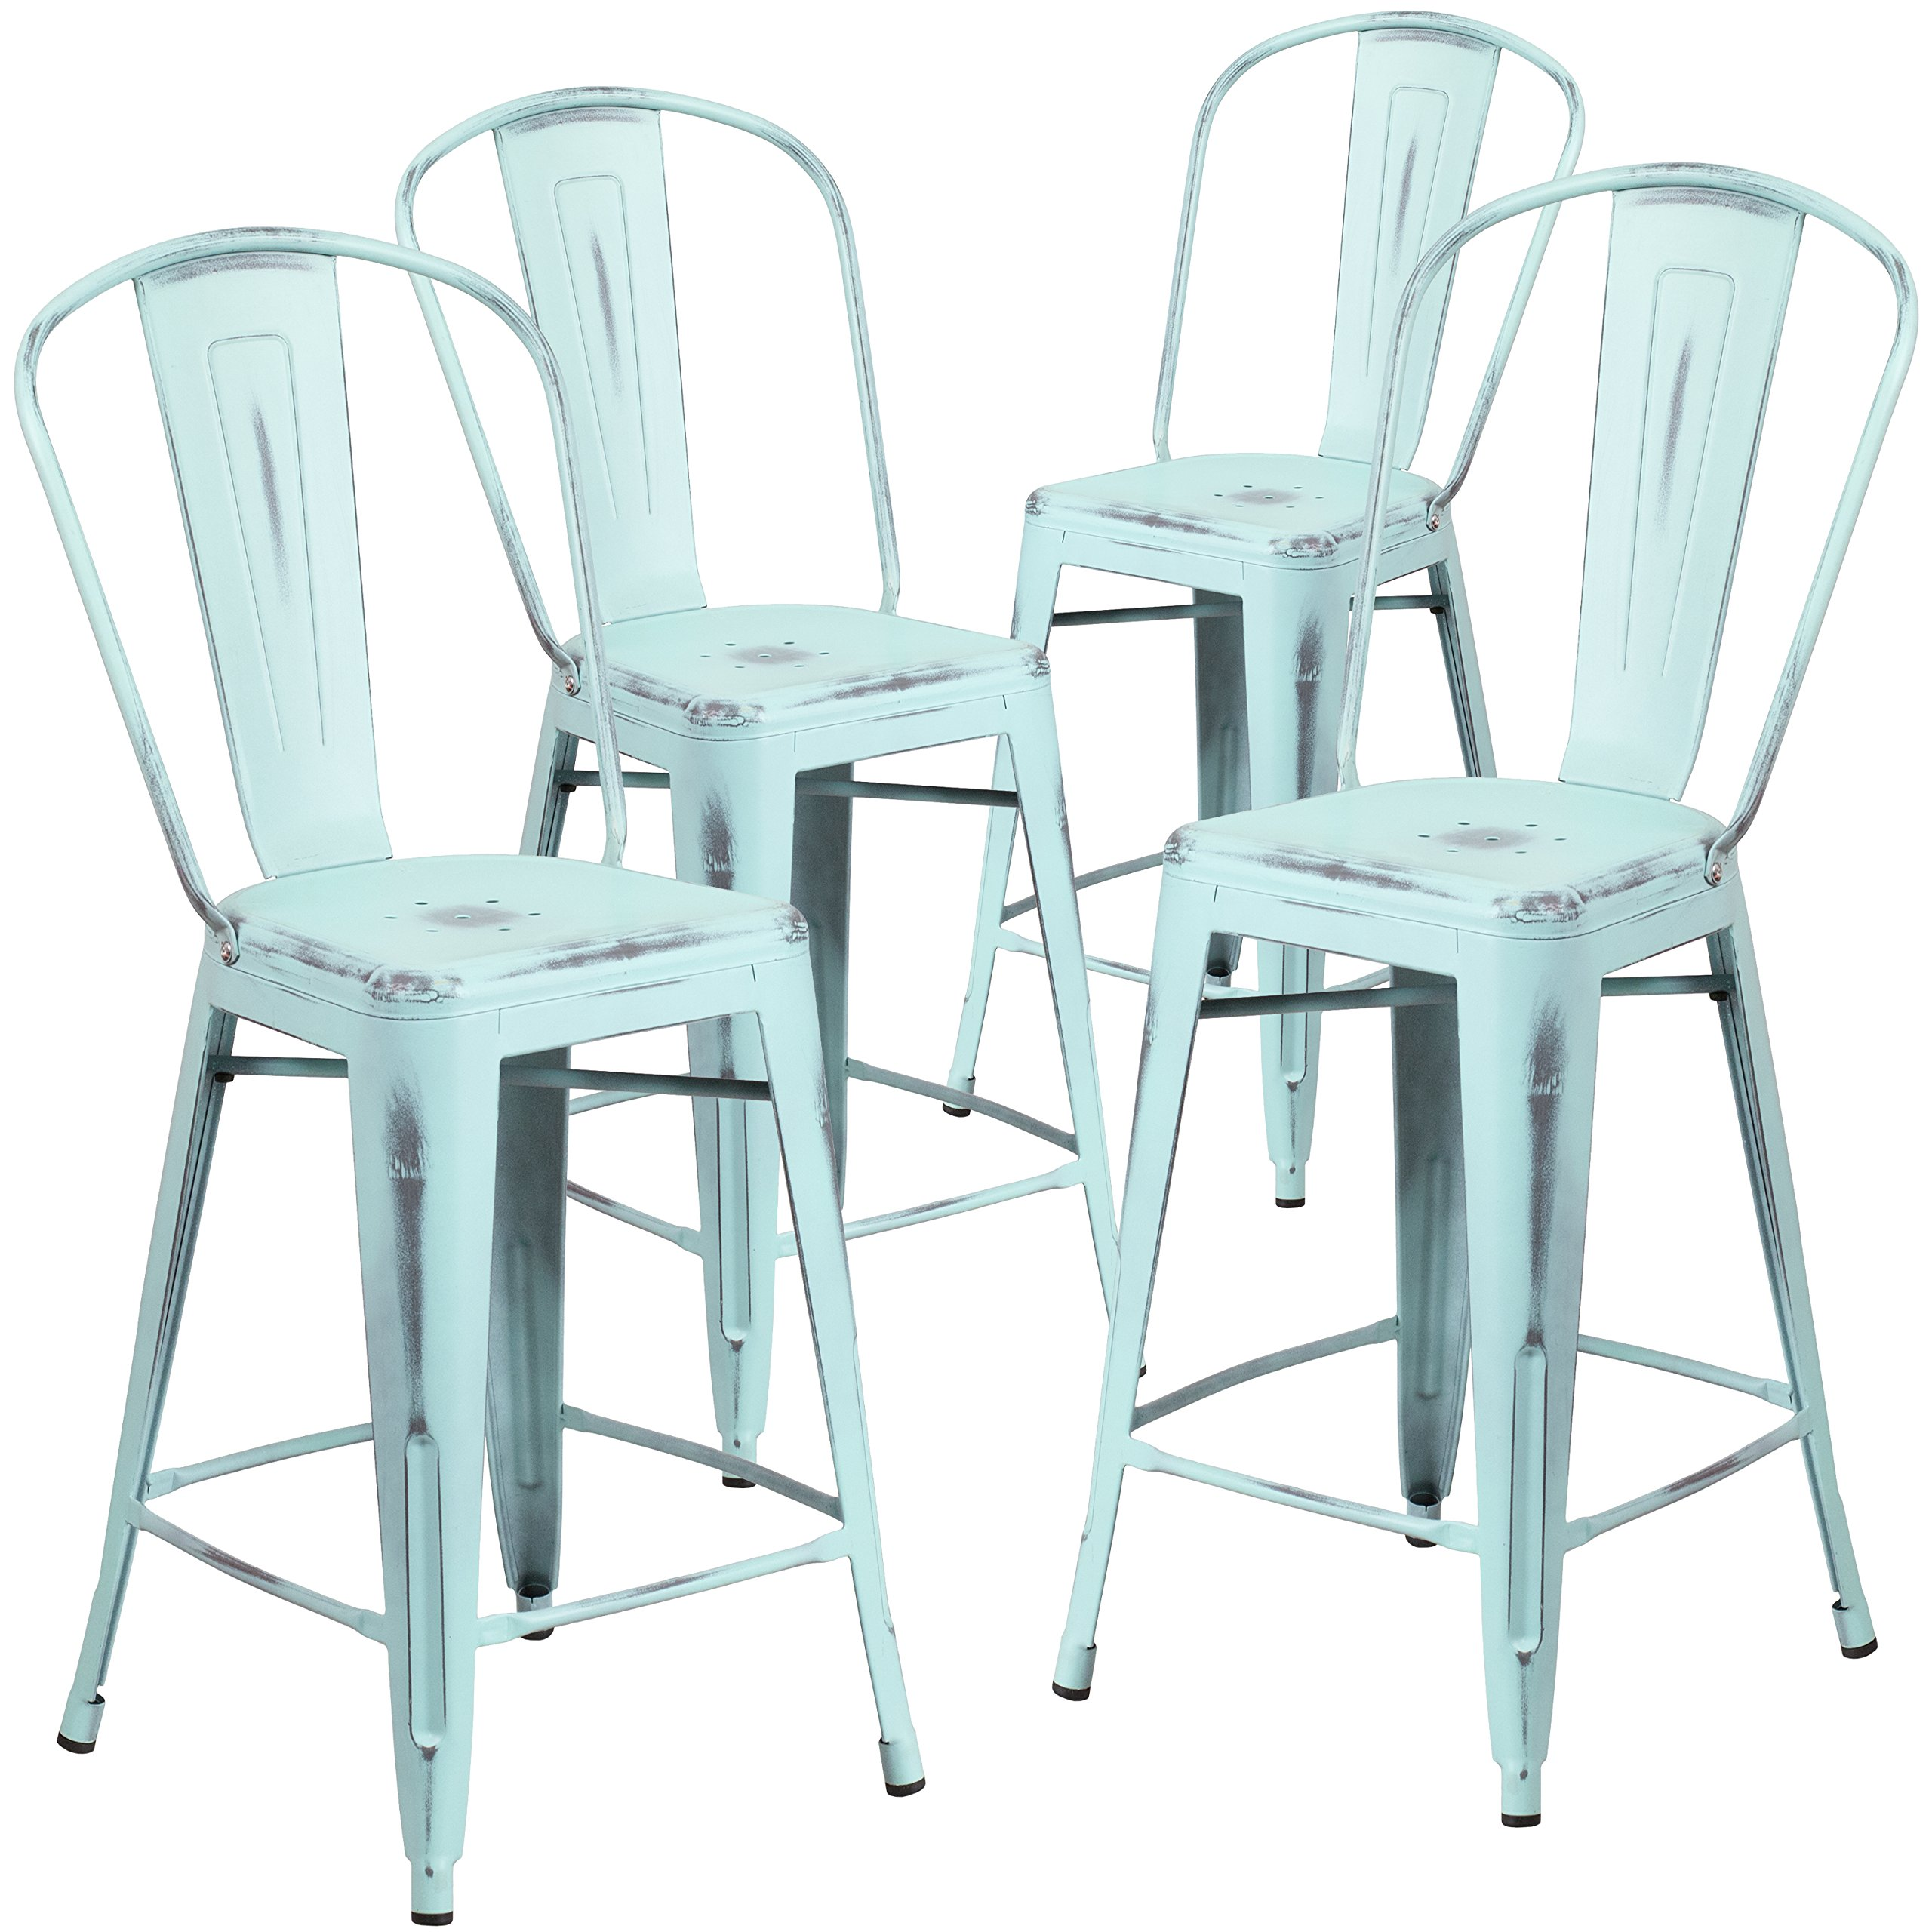 Flash Furniture 4 Pk. 24'' High Distressed Green-Blue Metal Indoor-Outdoor Counter Height Stool with Back by Flash Furniture